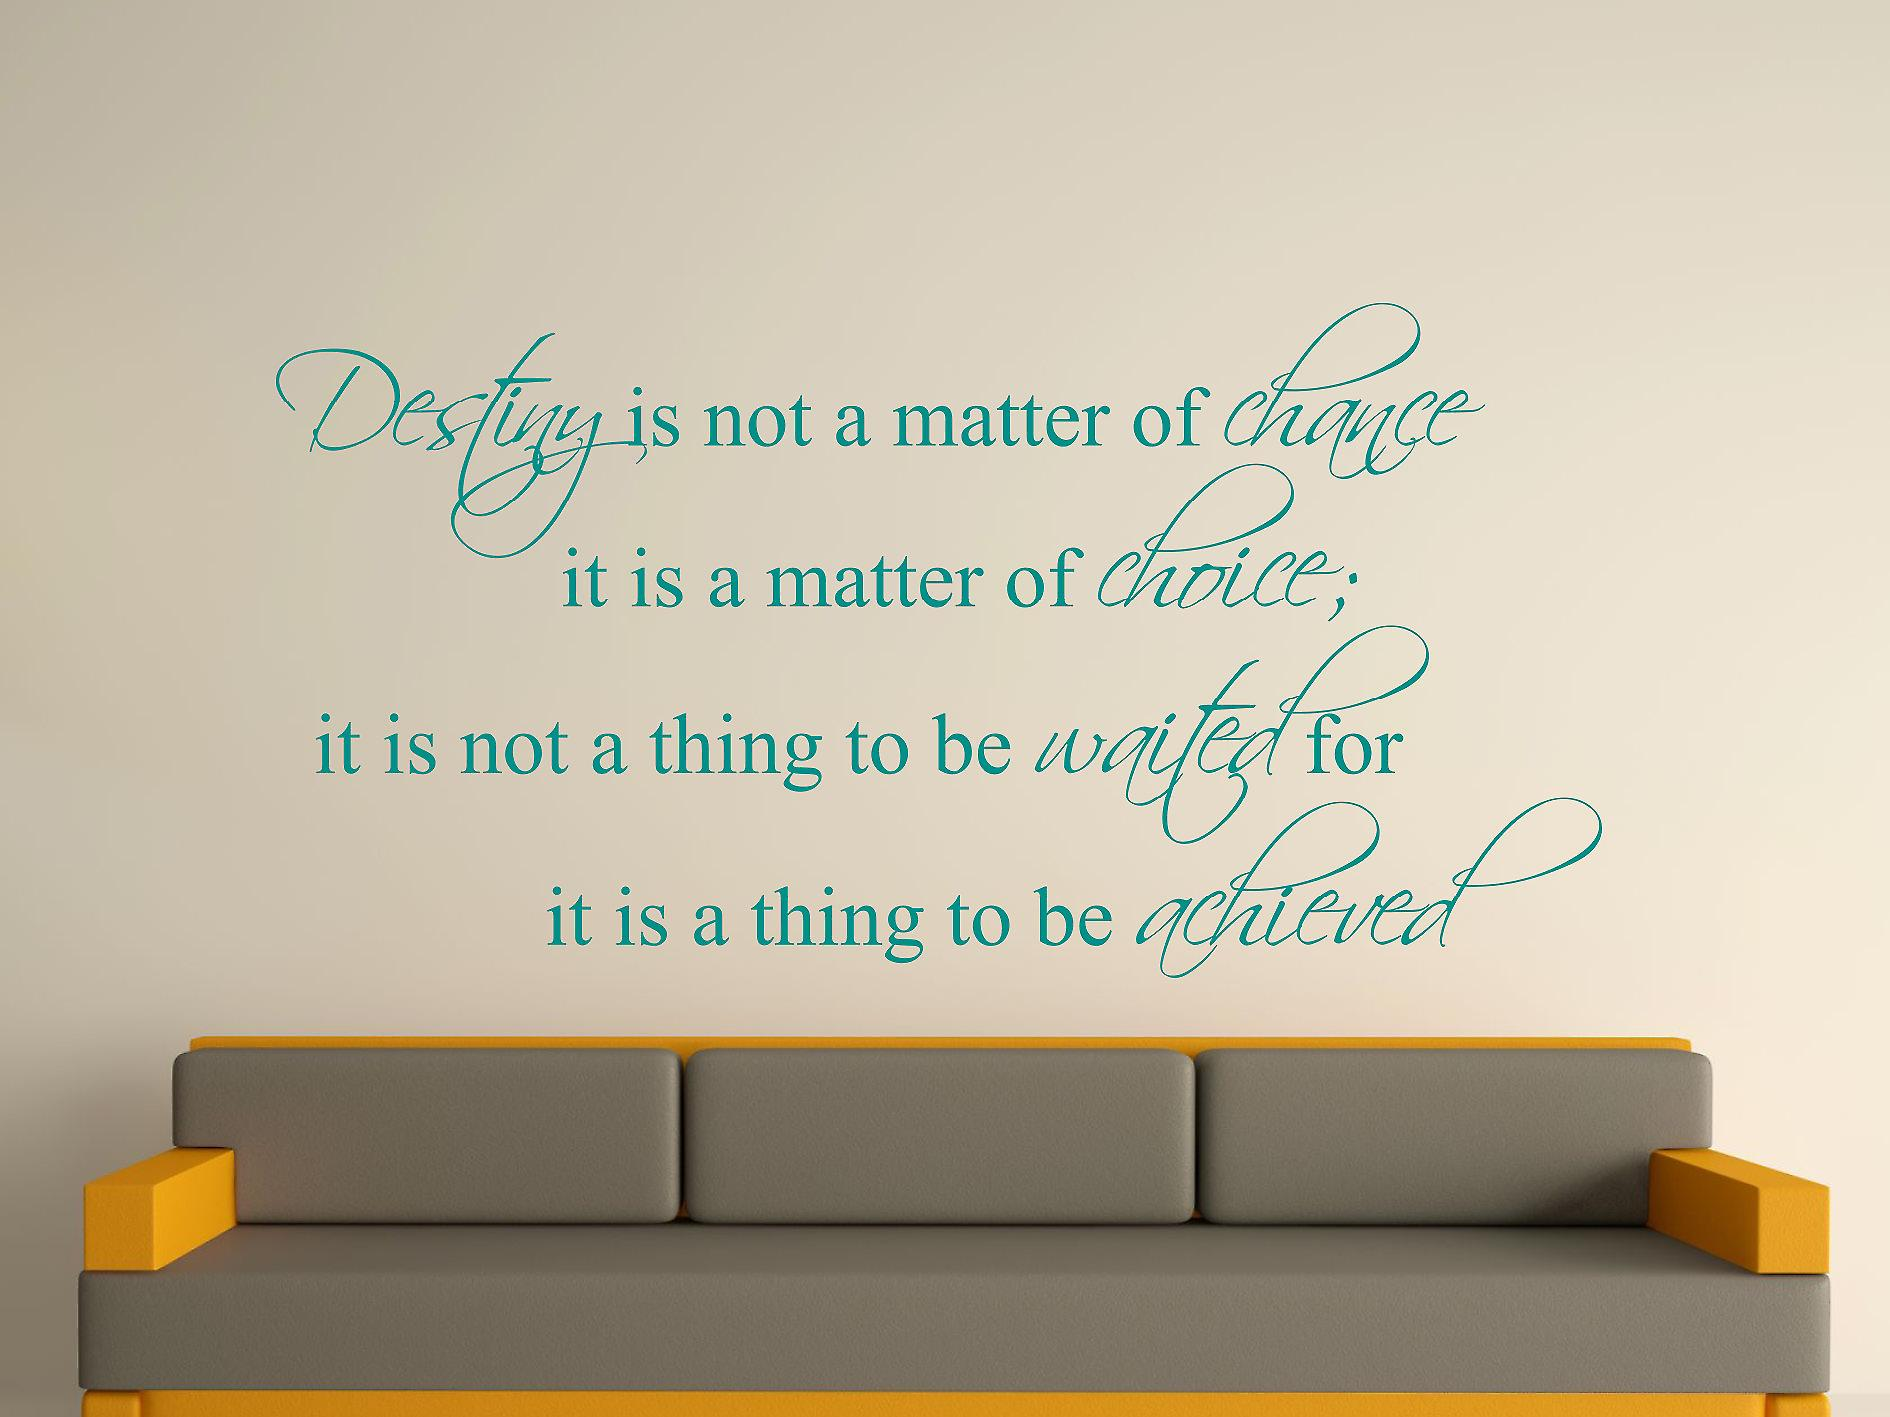 Destiny Is Not A Matter of Chance Wall Art Sticker - Aqua Green